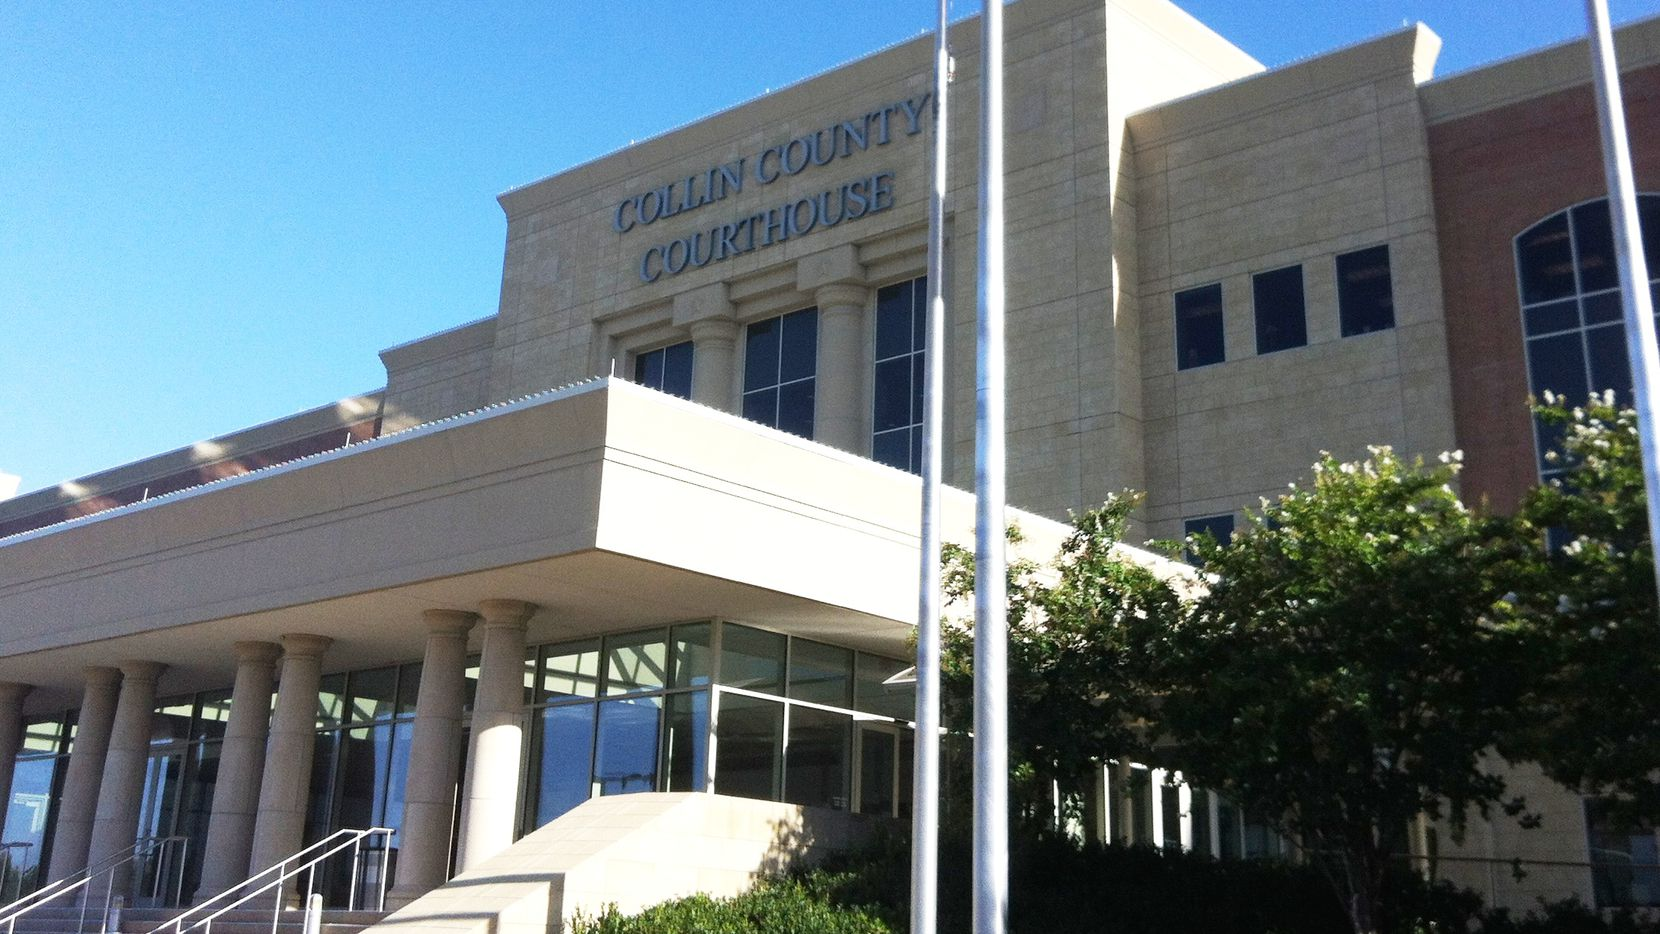 Attorney Marc Fratter earned over $460,000 in court appointments for indigent clients in Collin County in fiscal year 2018